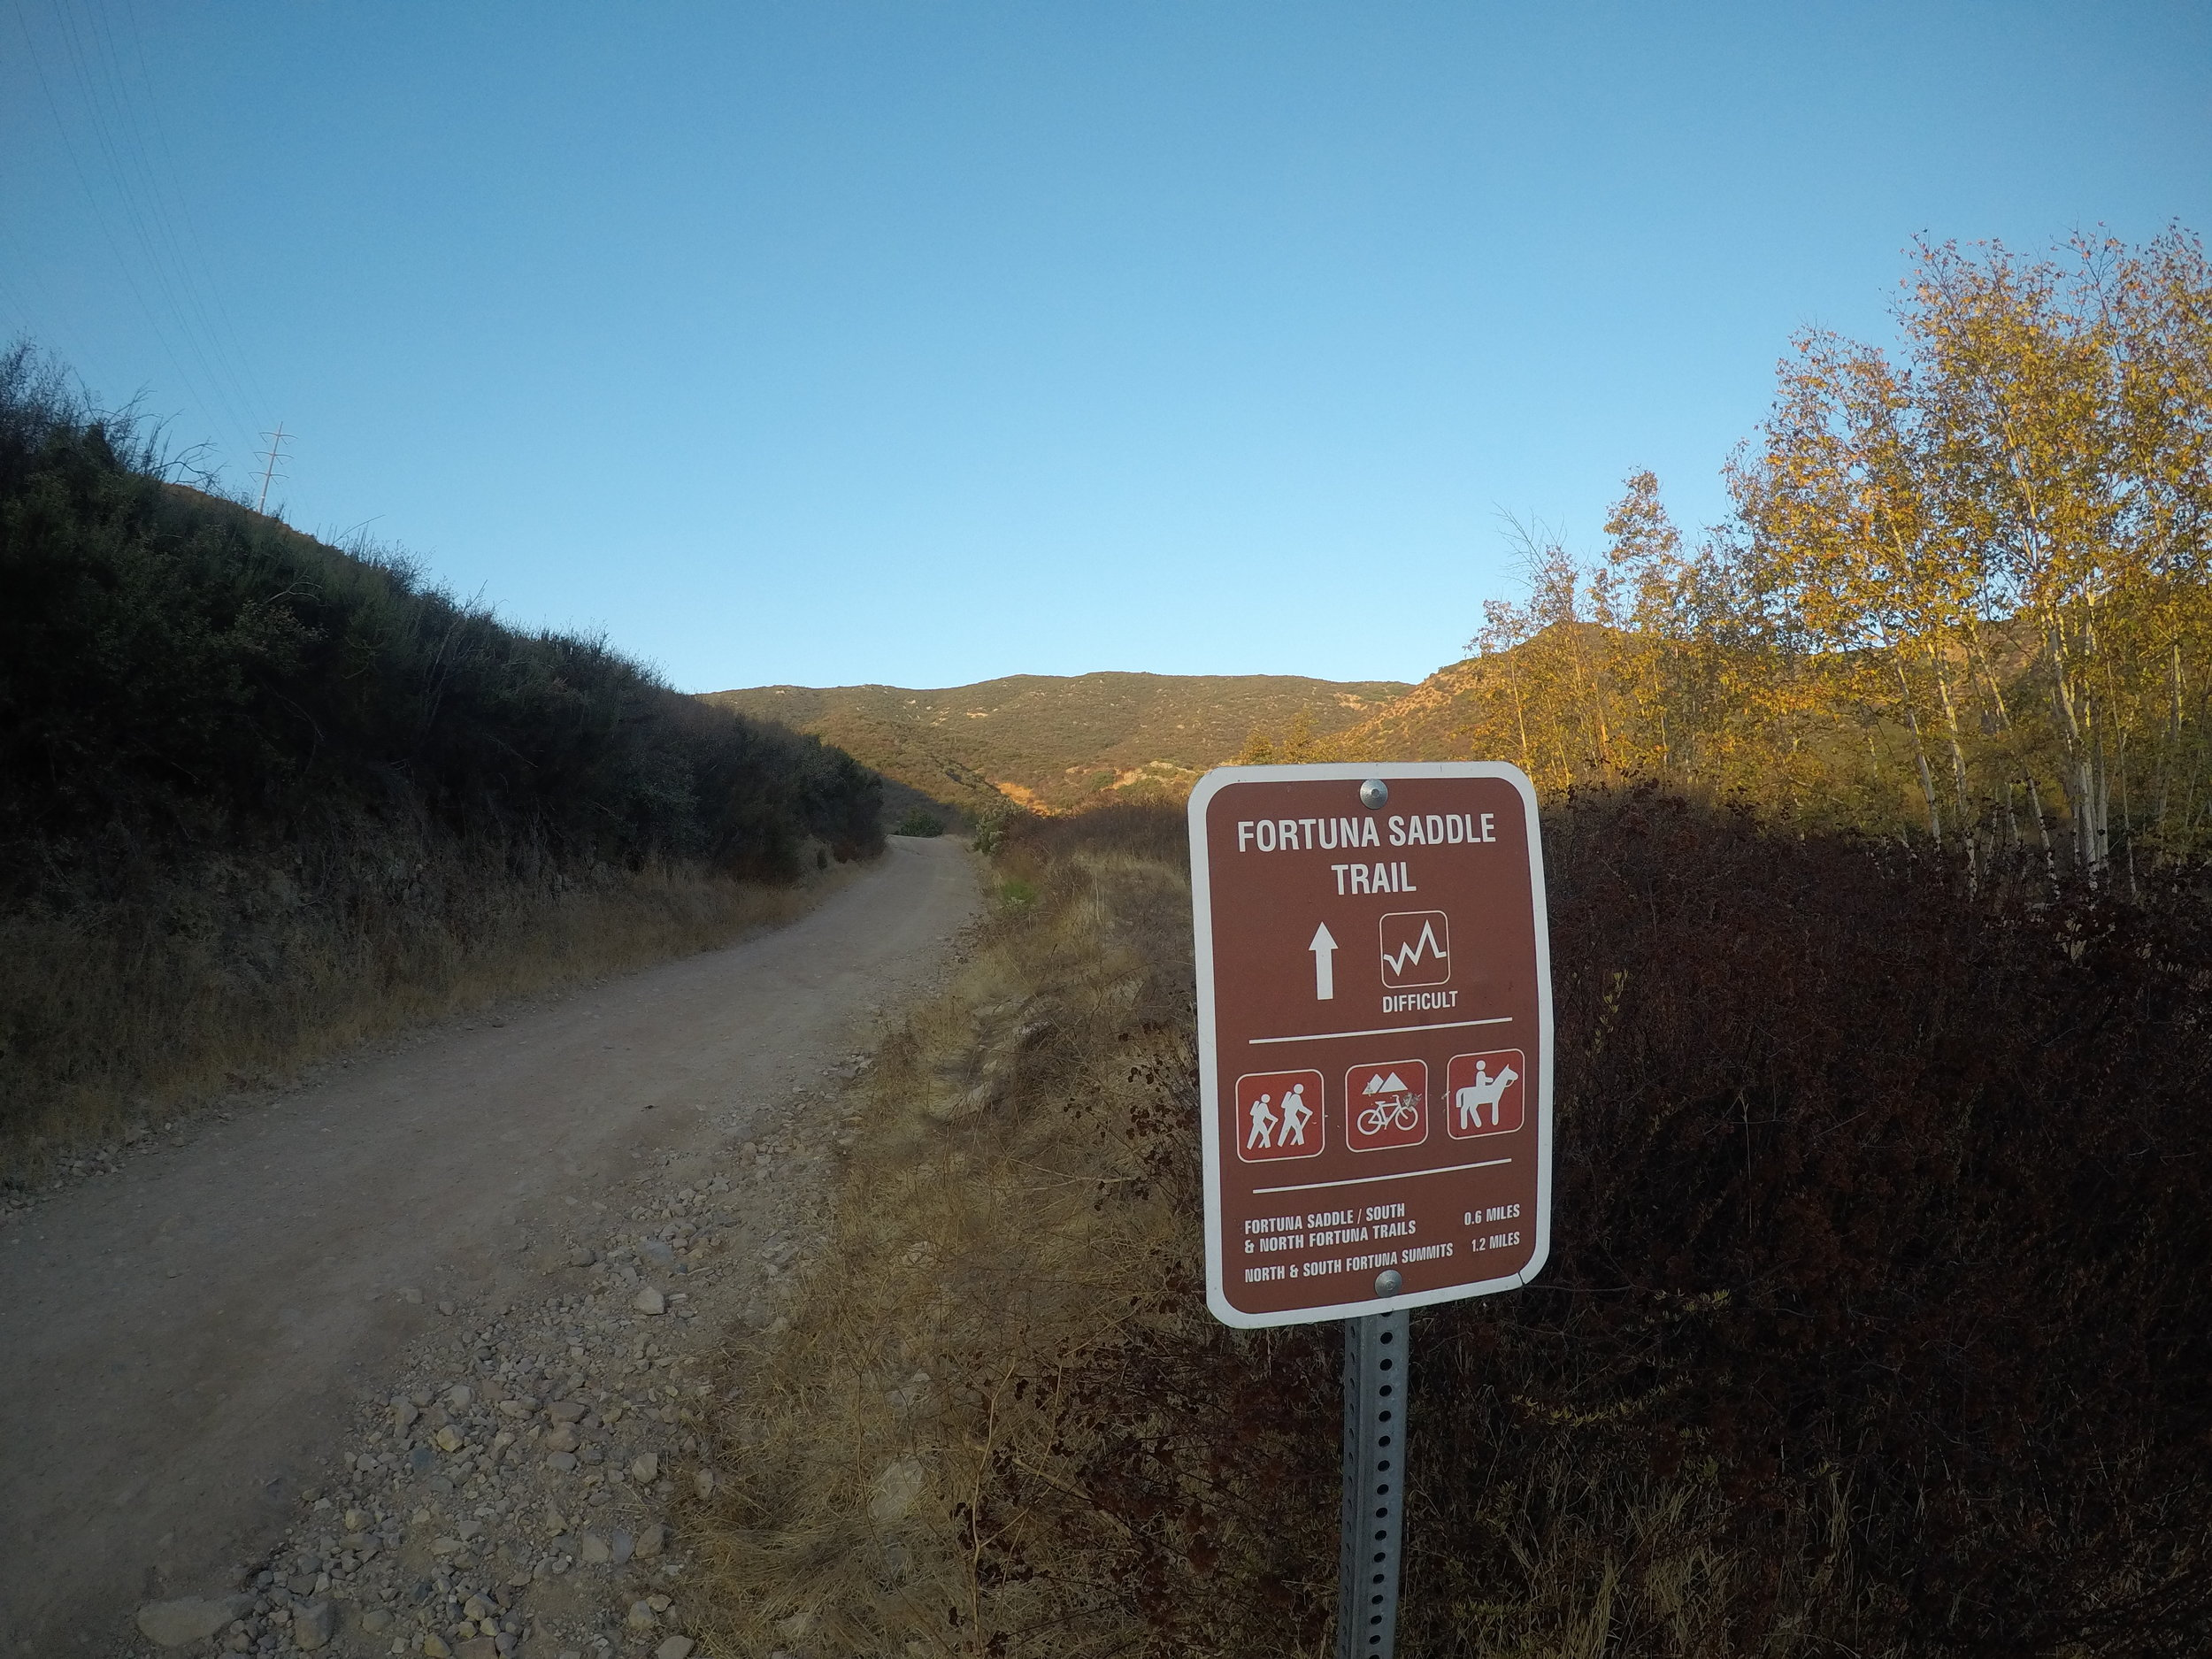 From Oak Canyon, the trail ascends up a steep fire access road toward the Fortuna Saddle.